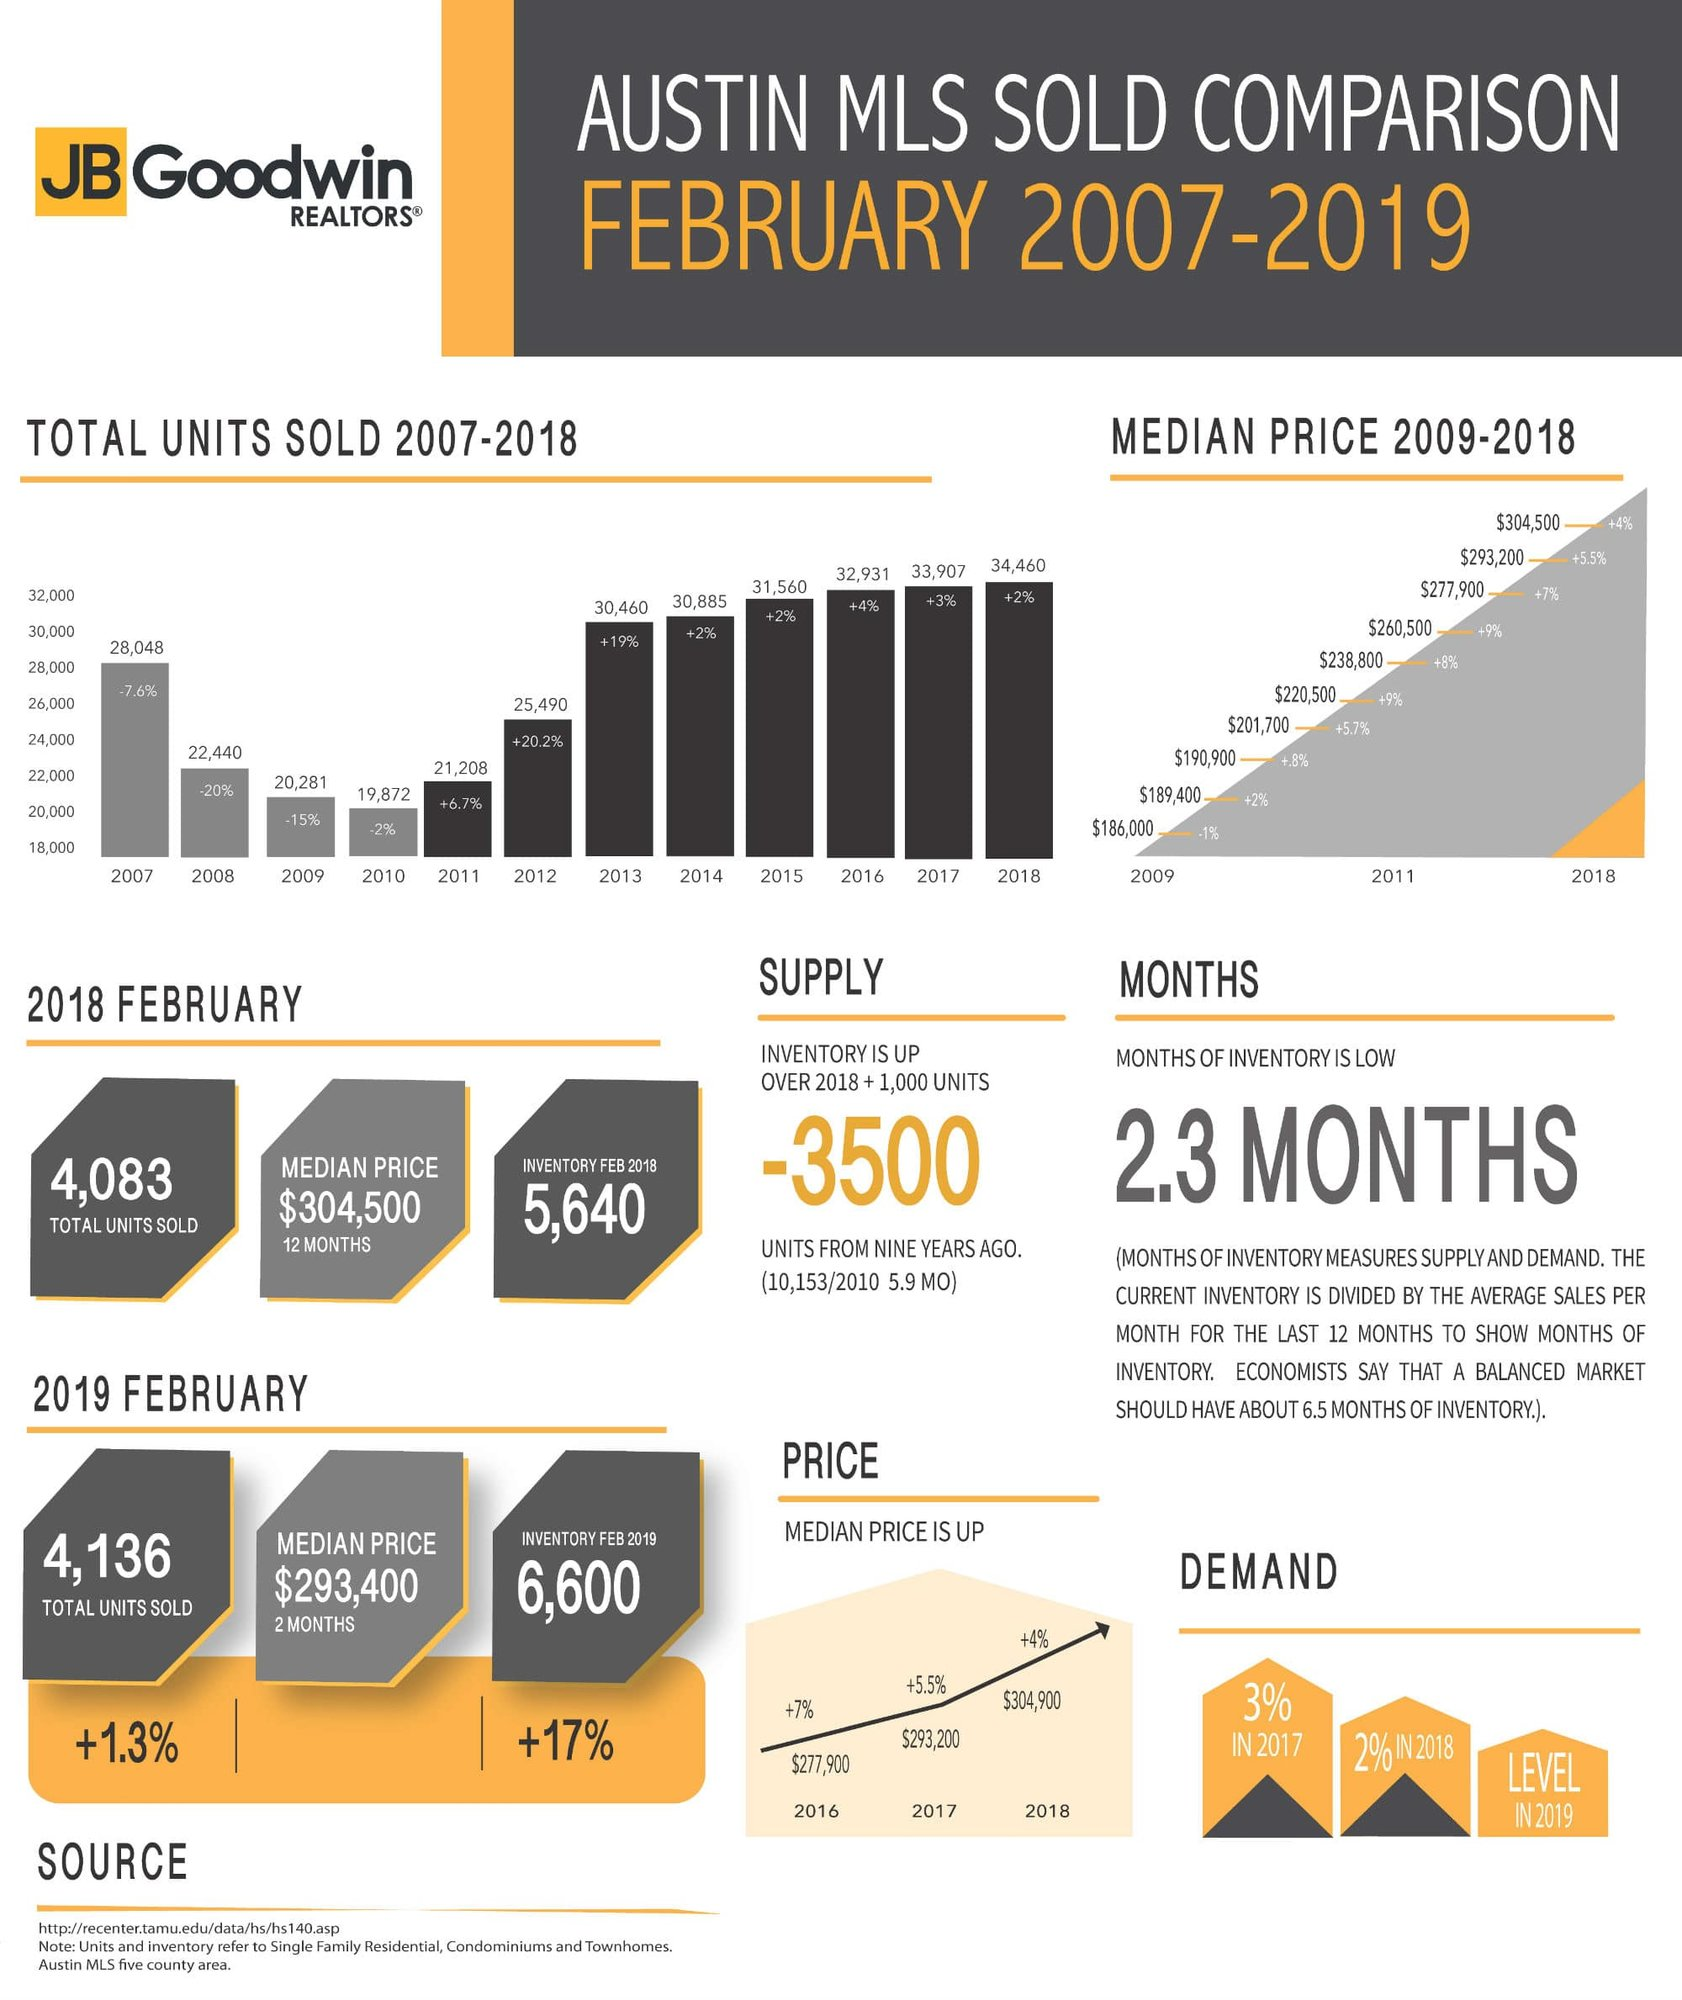 austin mls sold comparison - February 2019